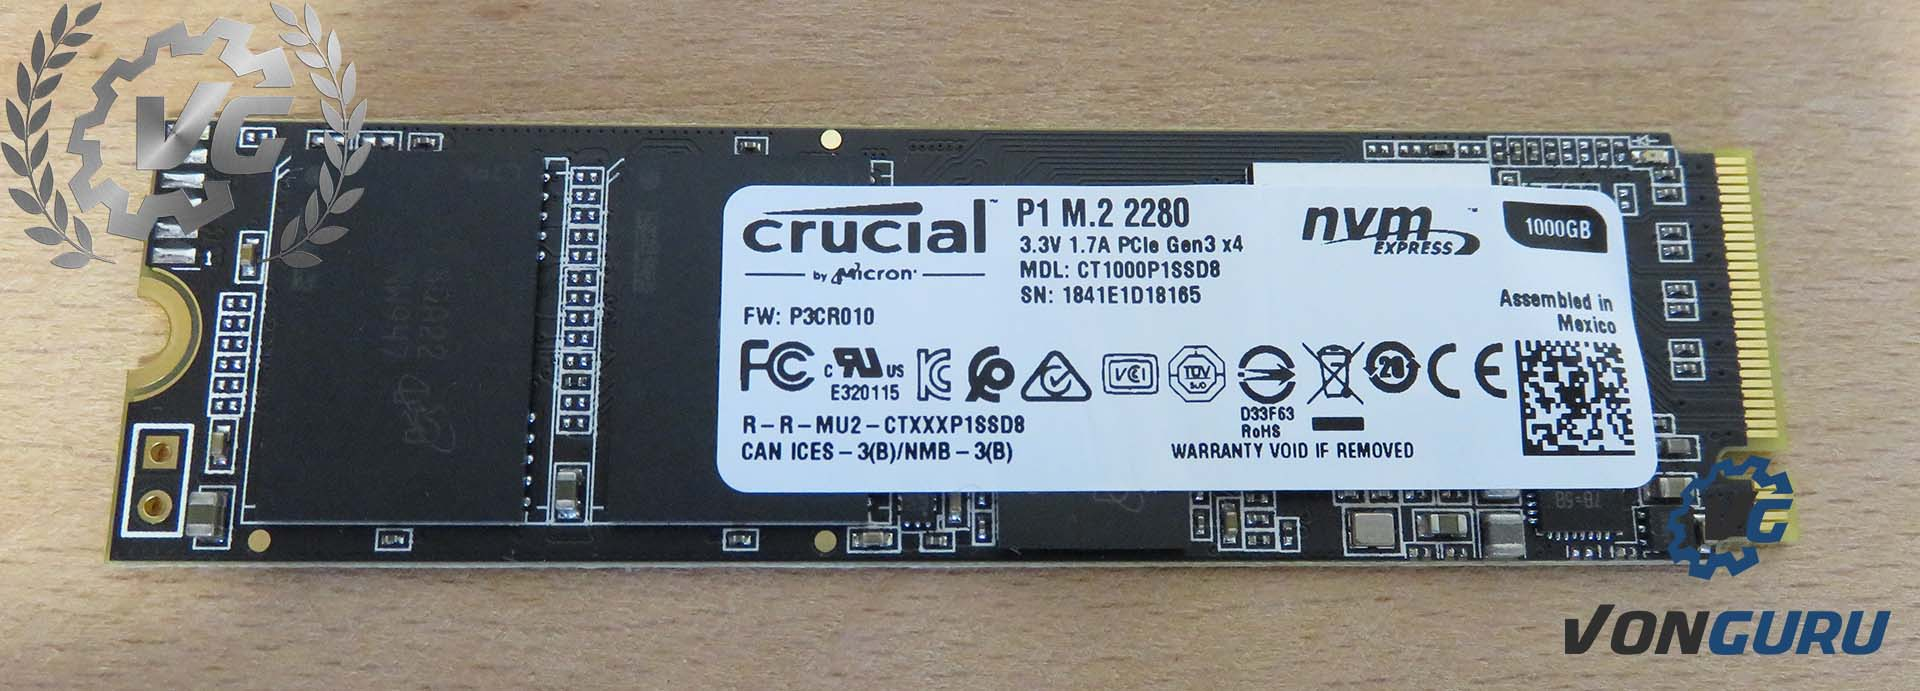 SSD NVMe Crucial P1